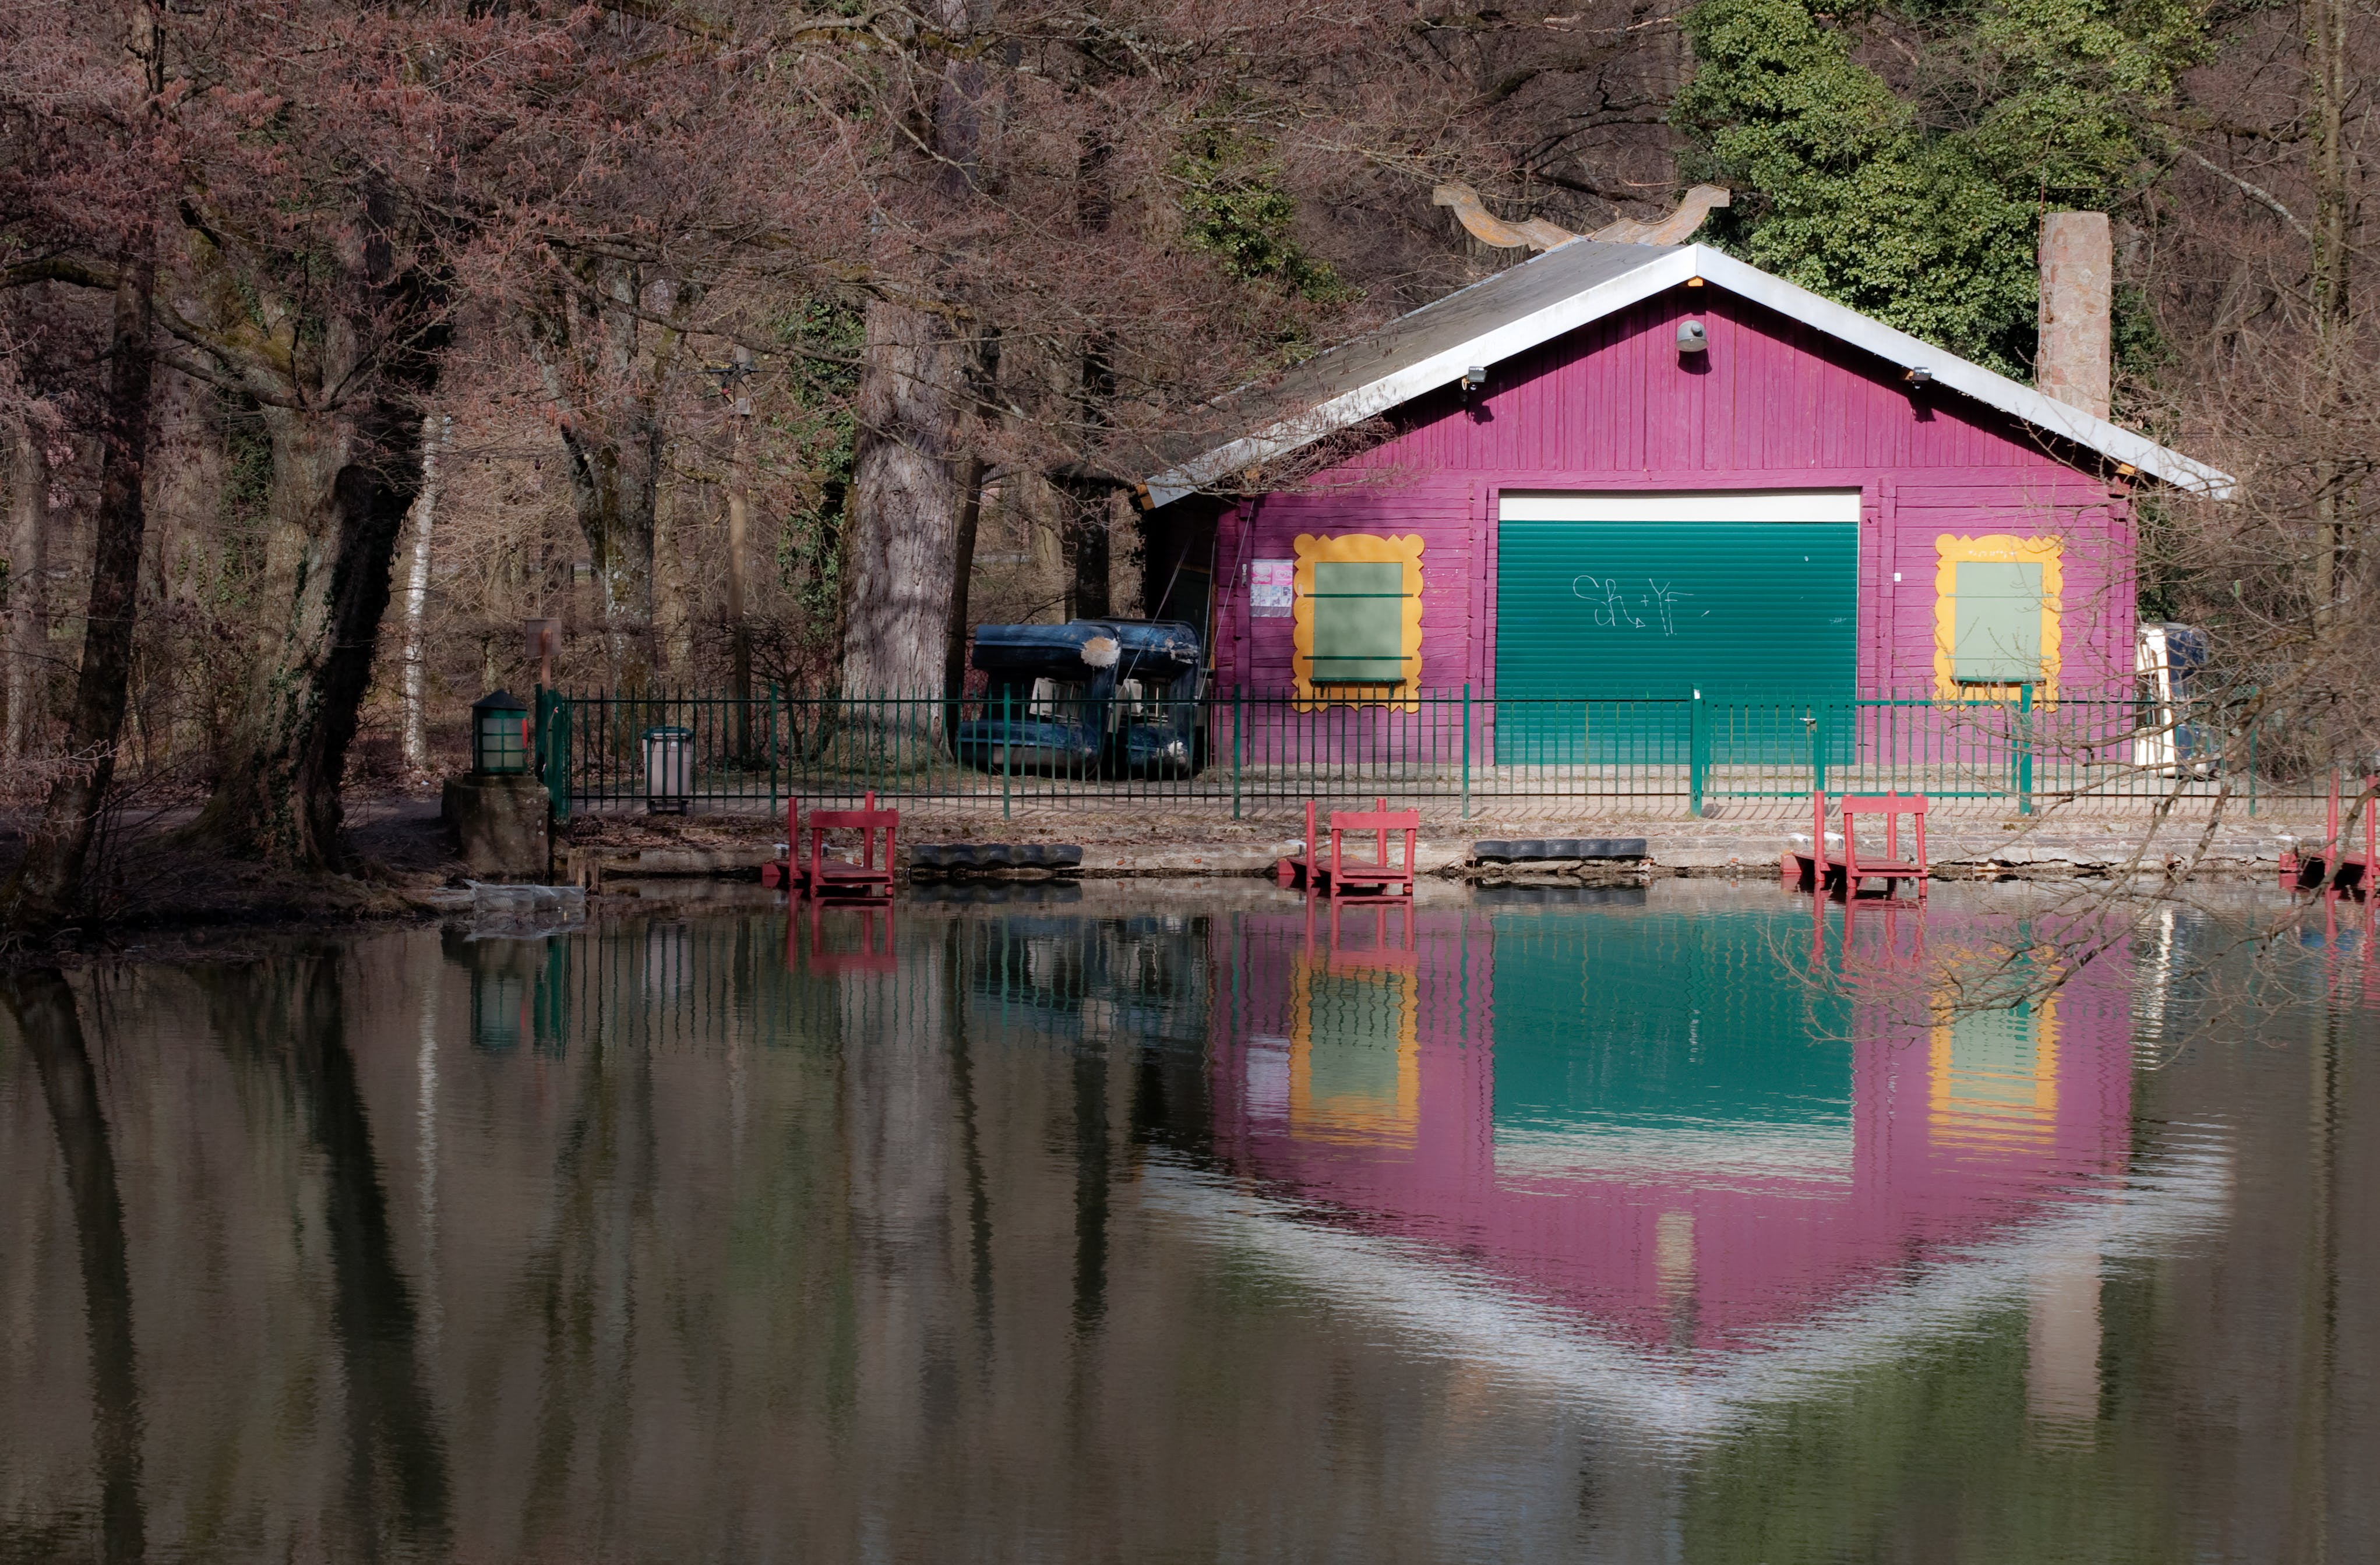 Calm Body of Water Near Pink Painted House